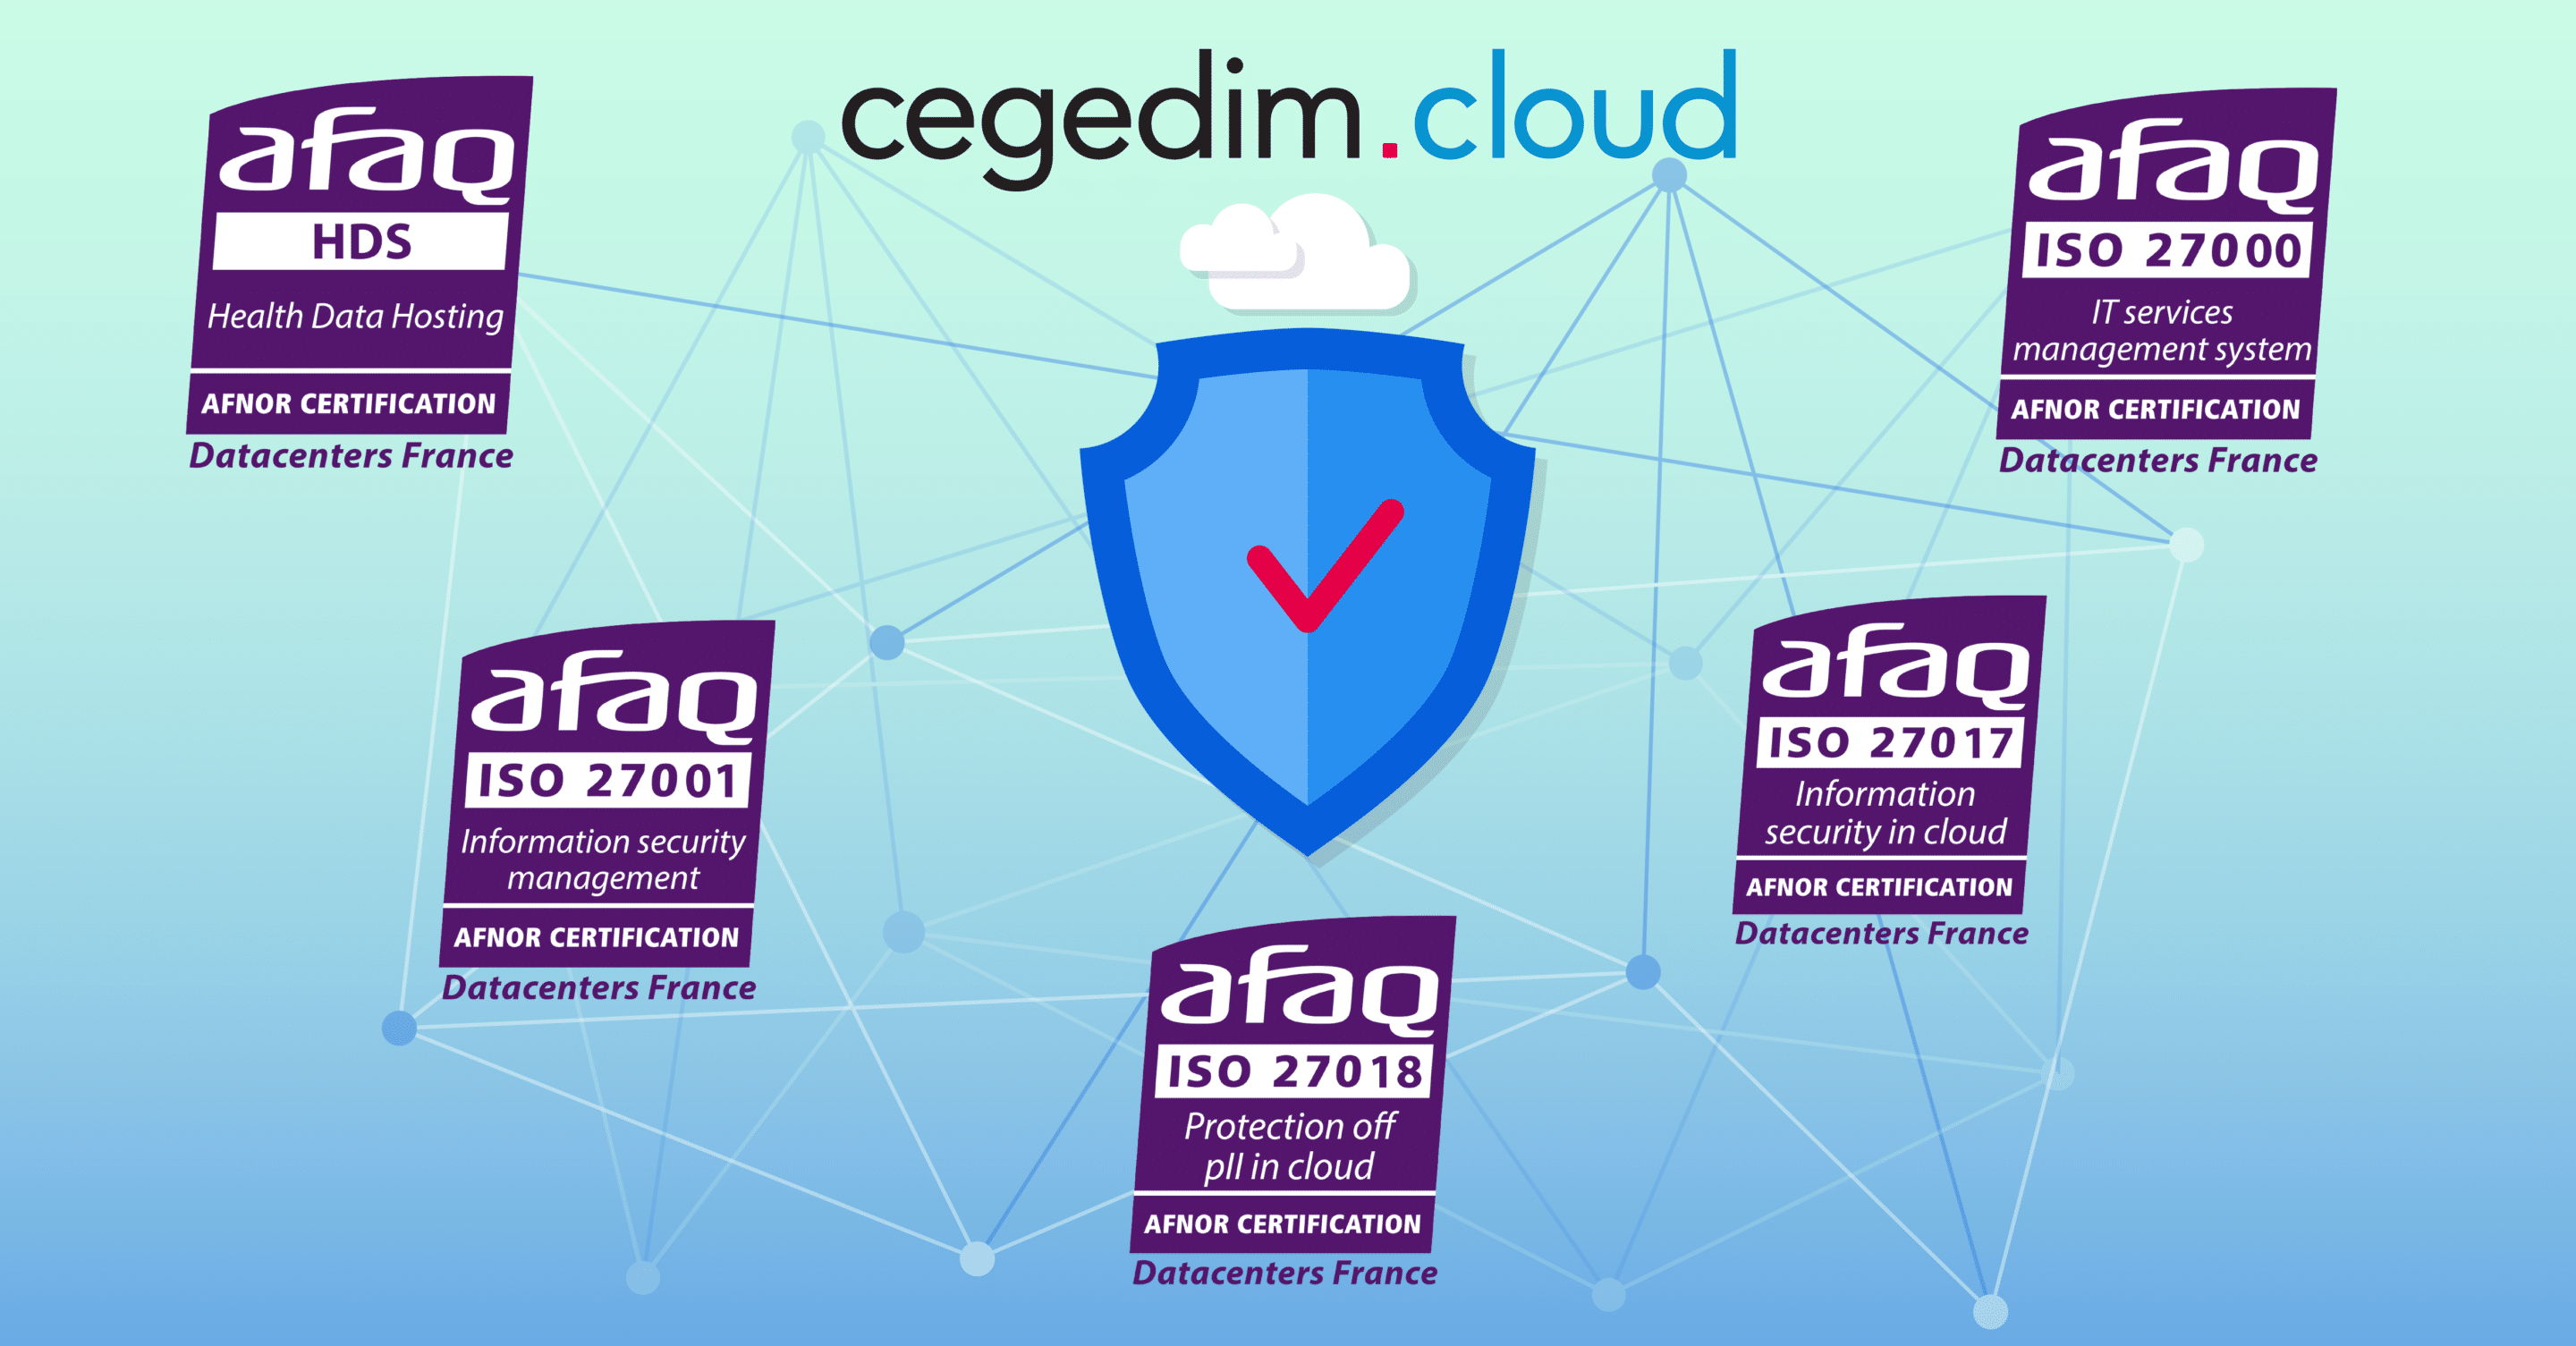 cegedim.cloud has obtained new certifications: HDS (Health Data Hosting) and ISO 20000-1: 2018